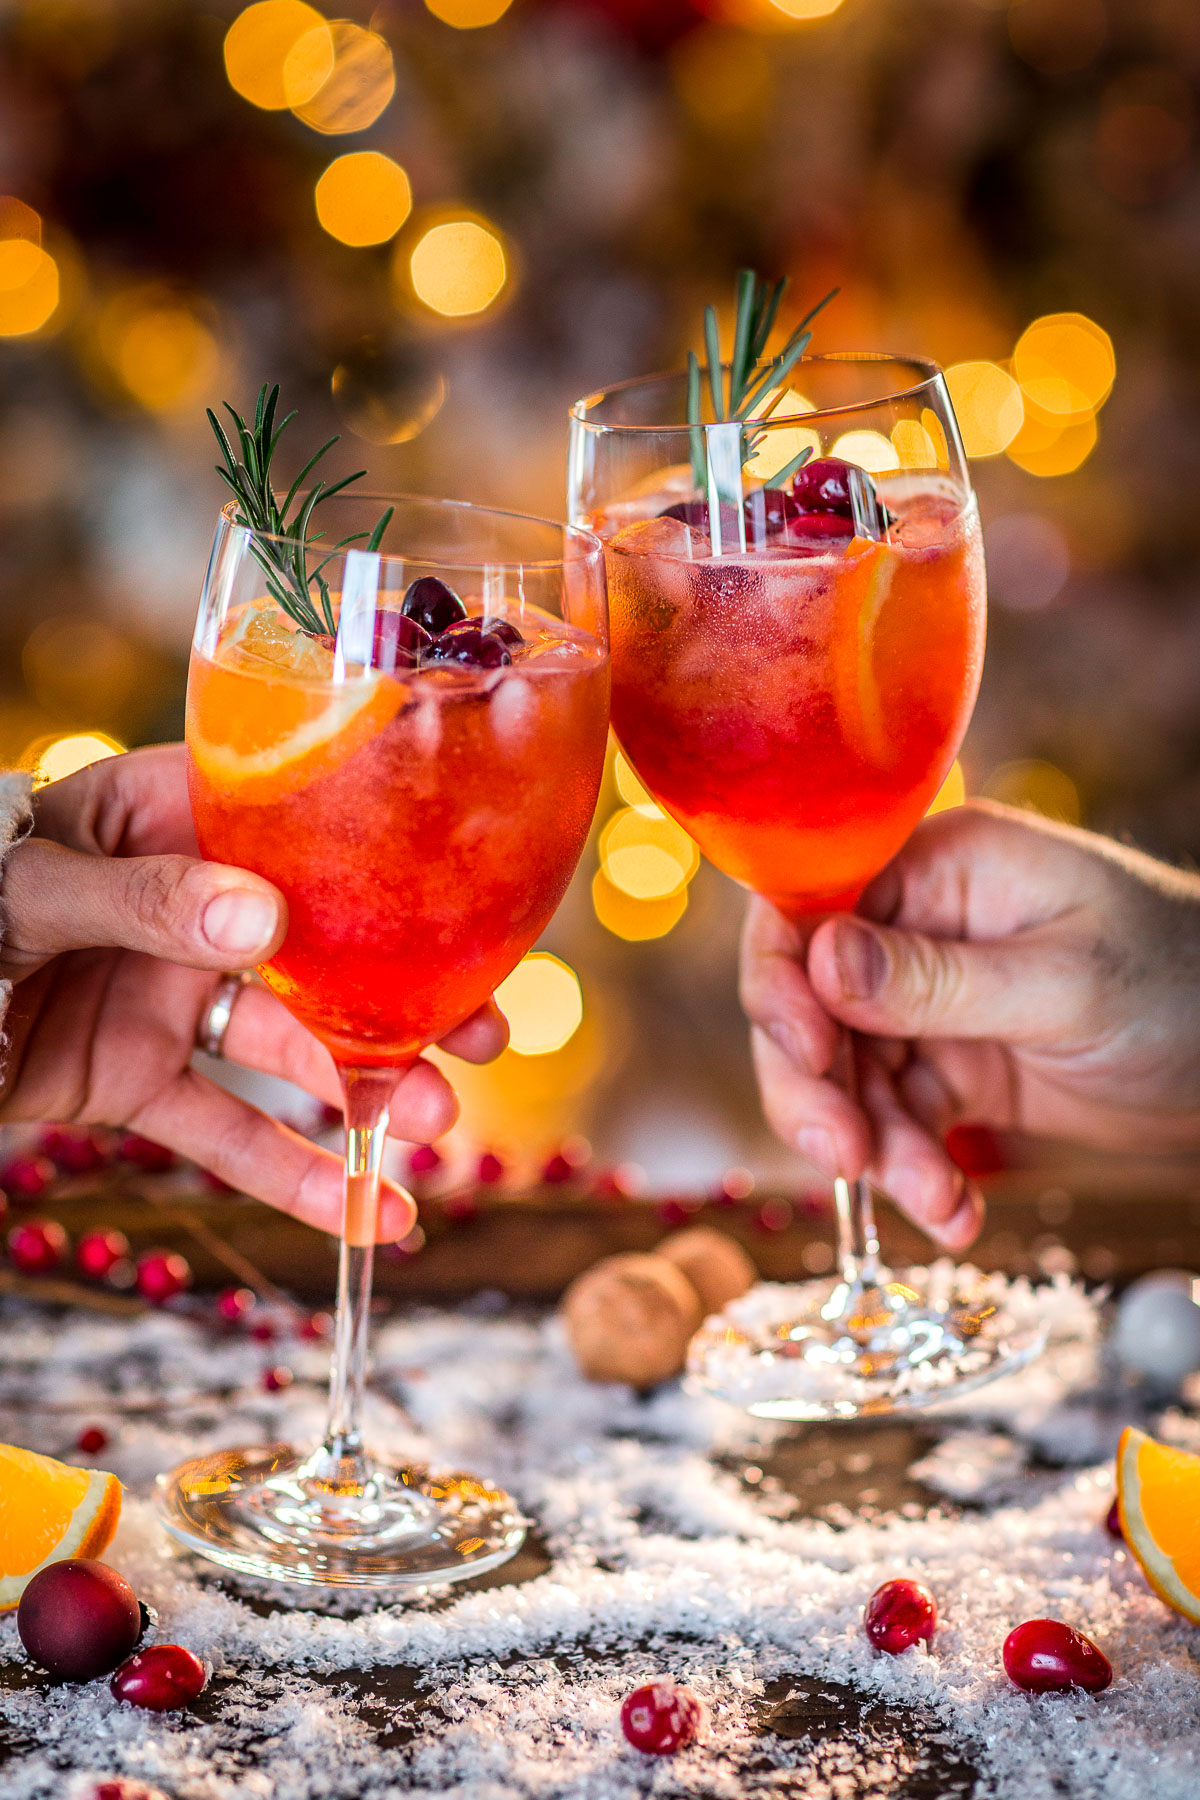 WINTER HOLIDAY CHRISTMAS SPRITZER recipe with cranberry orange juice Ricetta SPRITZ di NATALE con succo di arance e cranberry mirtilli rossi APERITIVO Merry #CHRISTMAS food photography